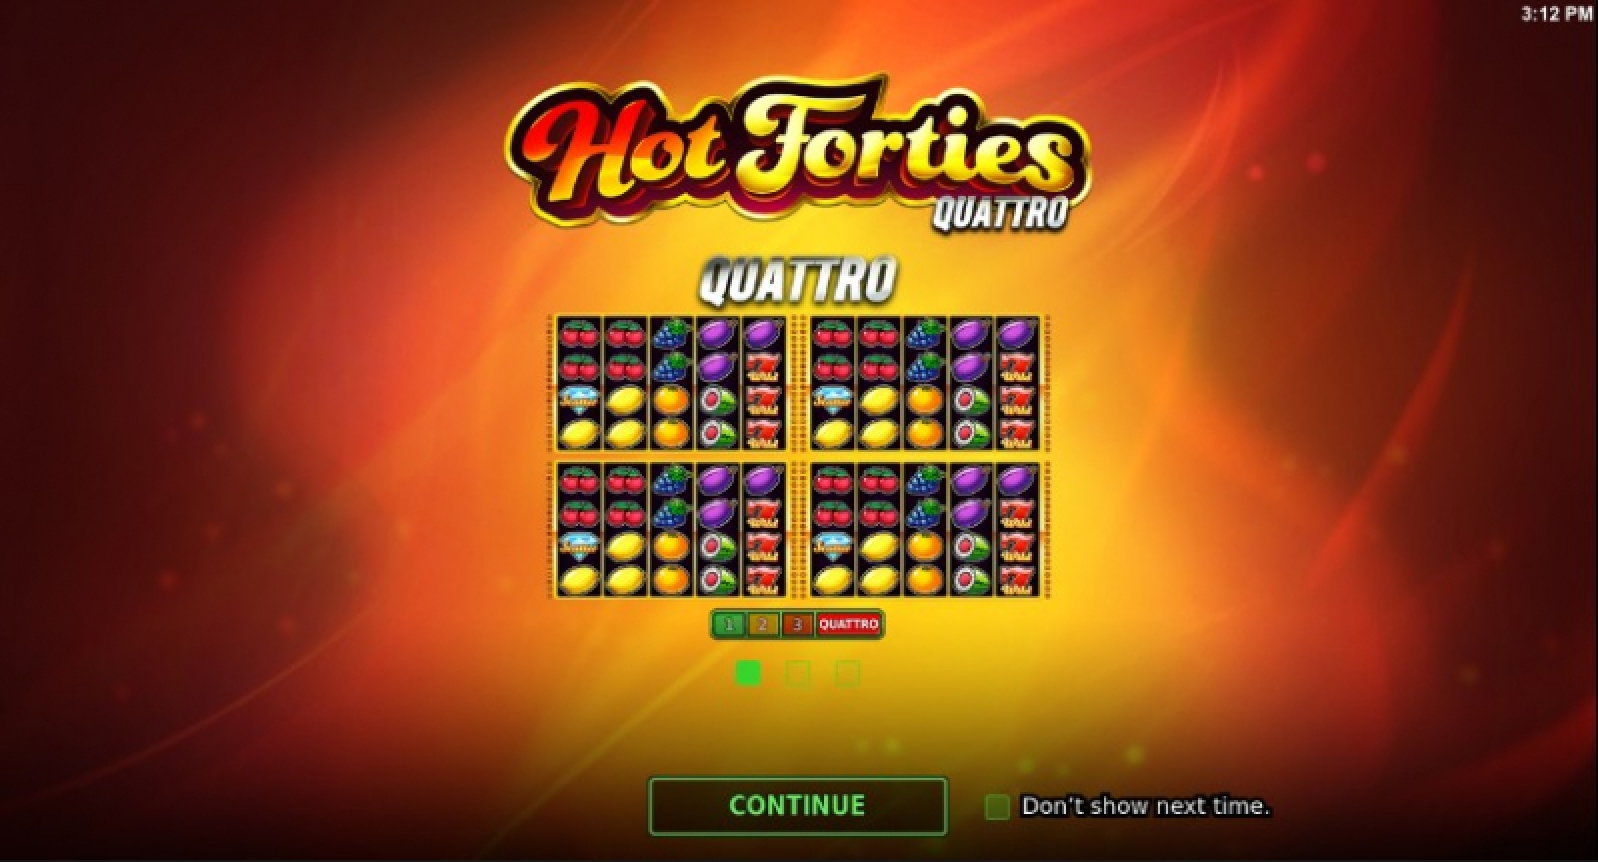 Hot Forties Quattro Online Slot Demo Game by Stakelogic